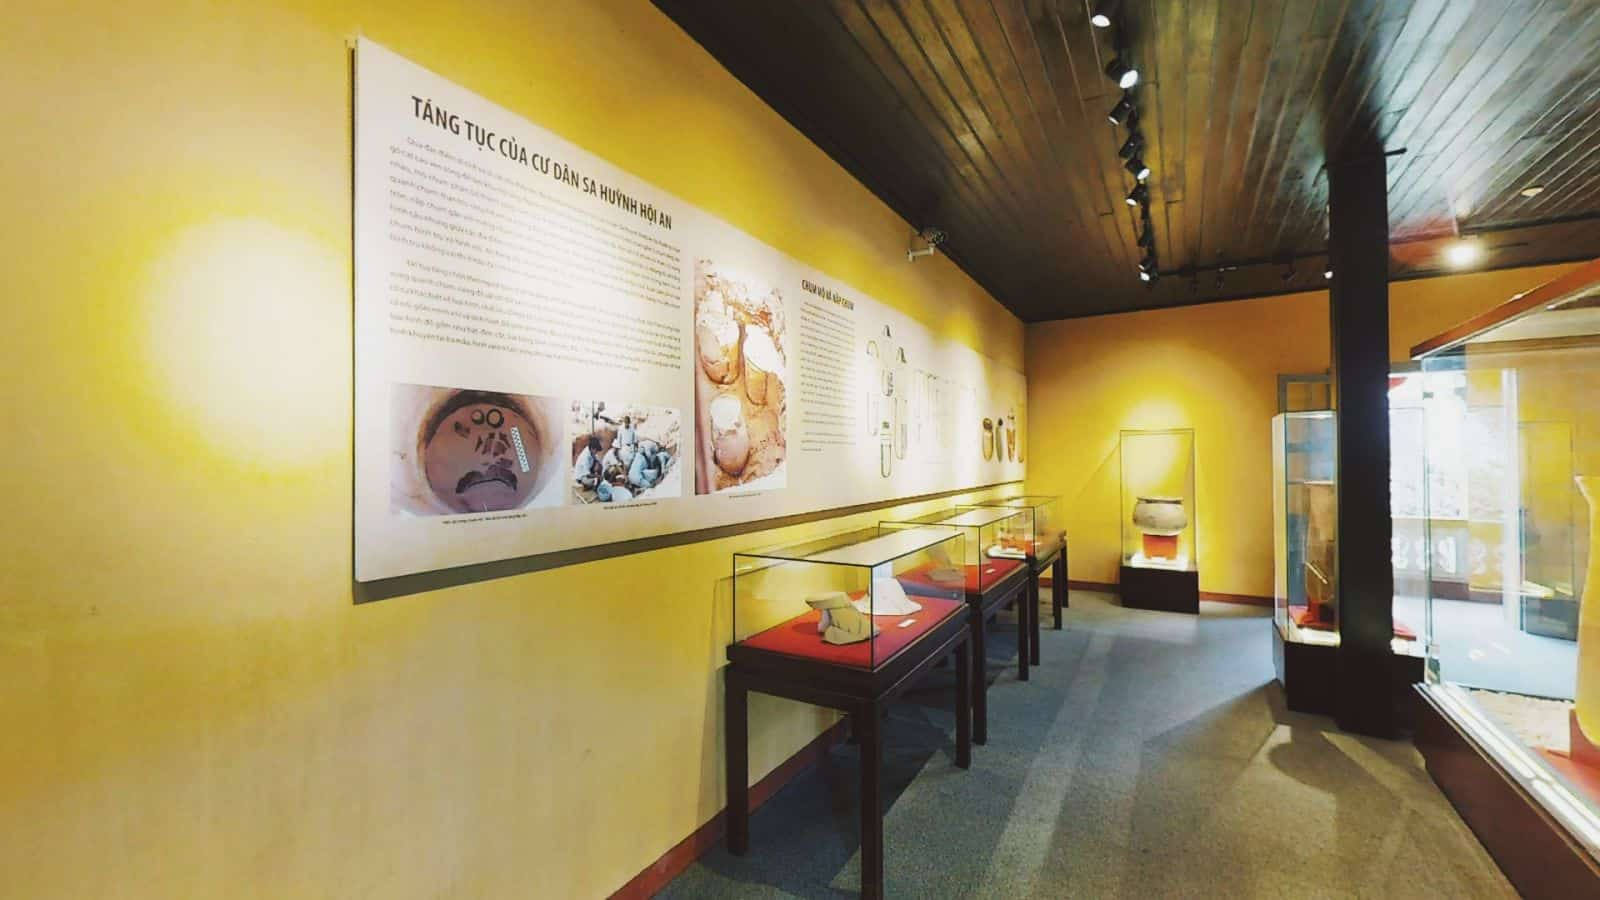 Museum of Sa Huynh Culture